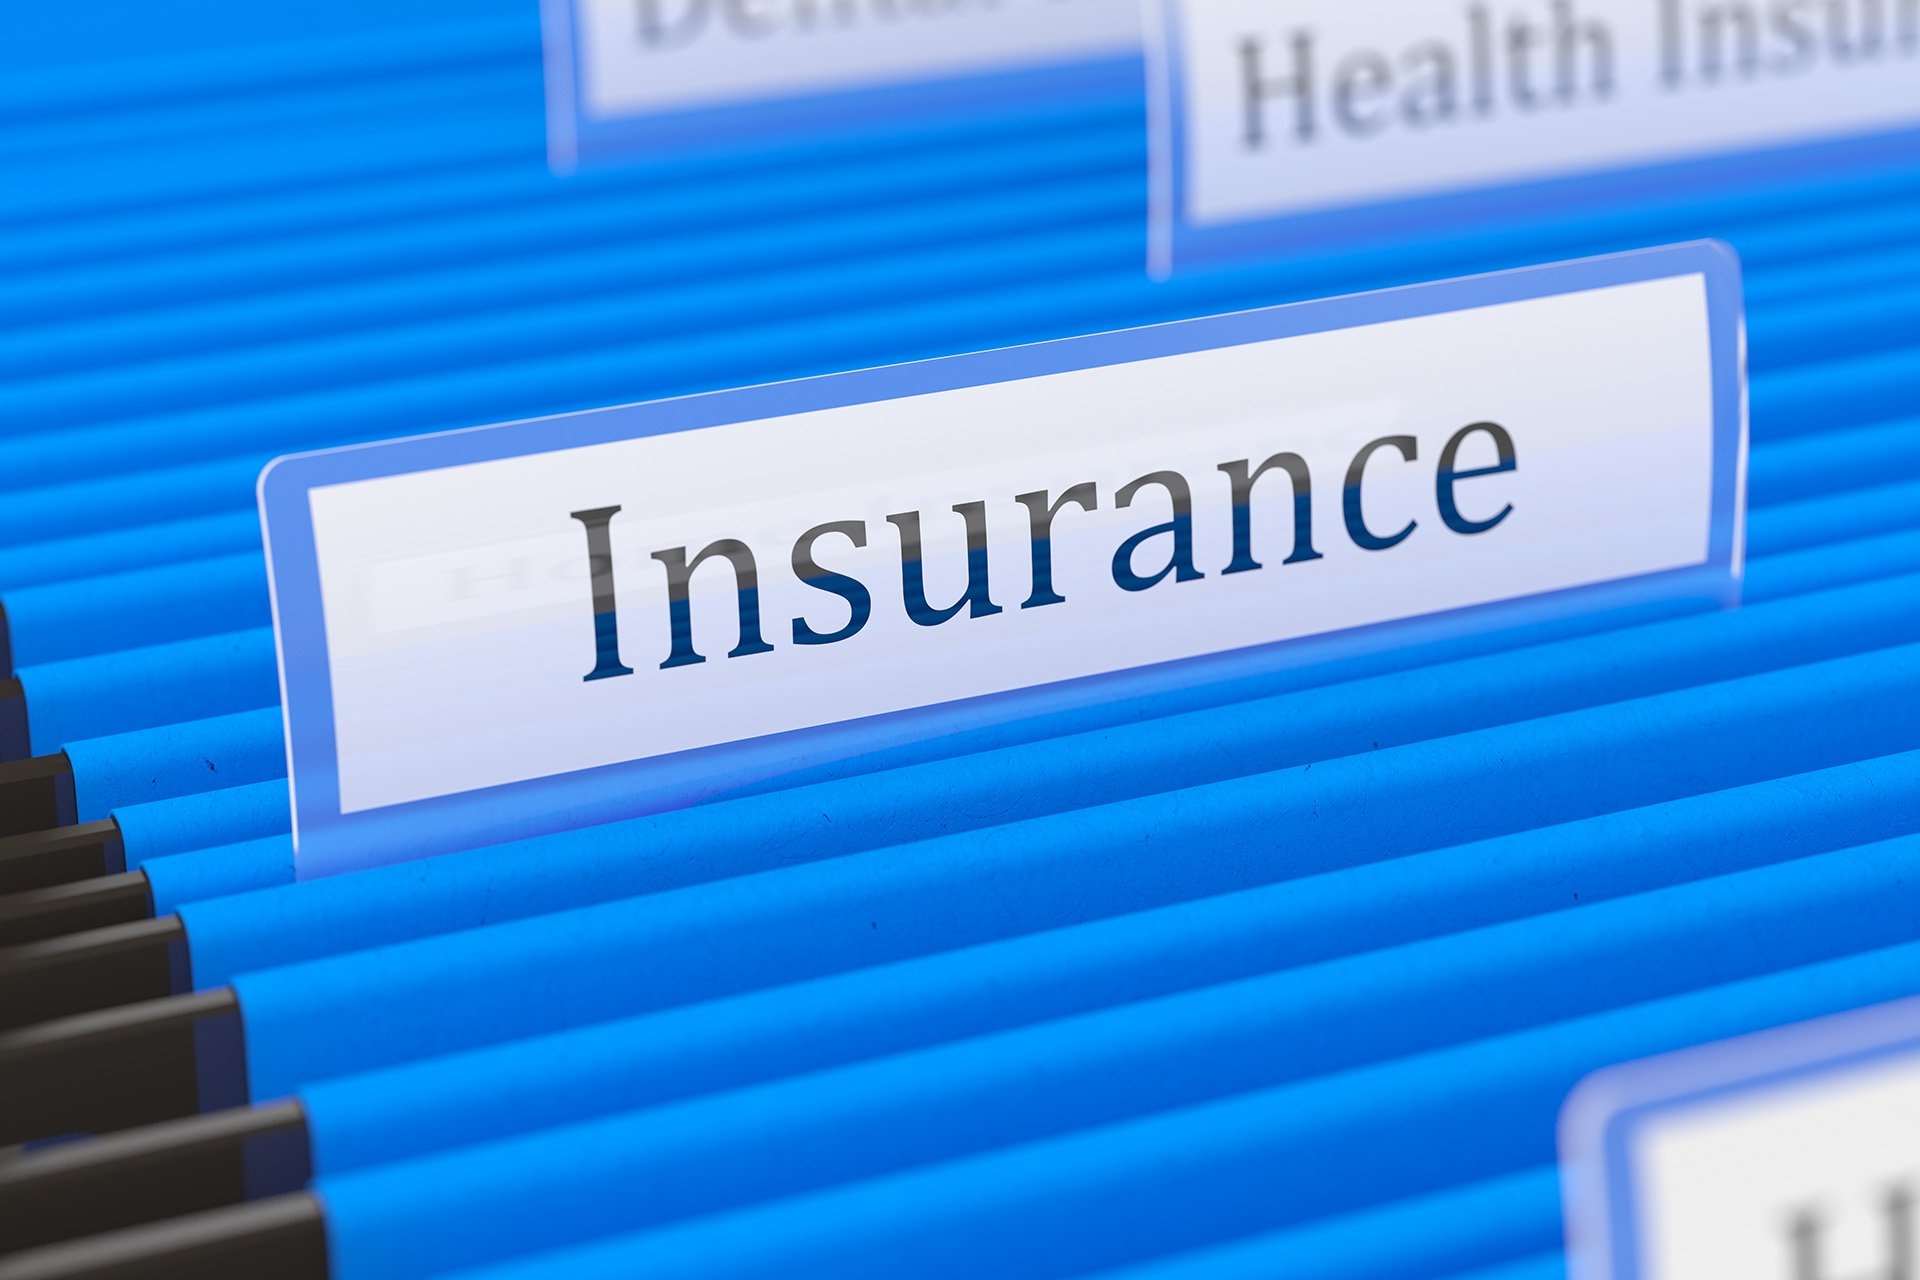 Storage Unit Insurance Do's and Dont's